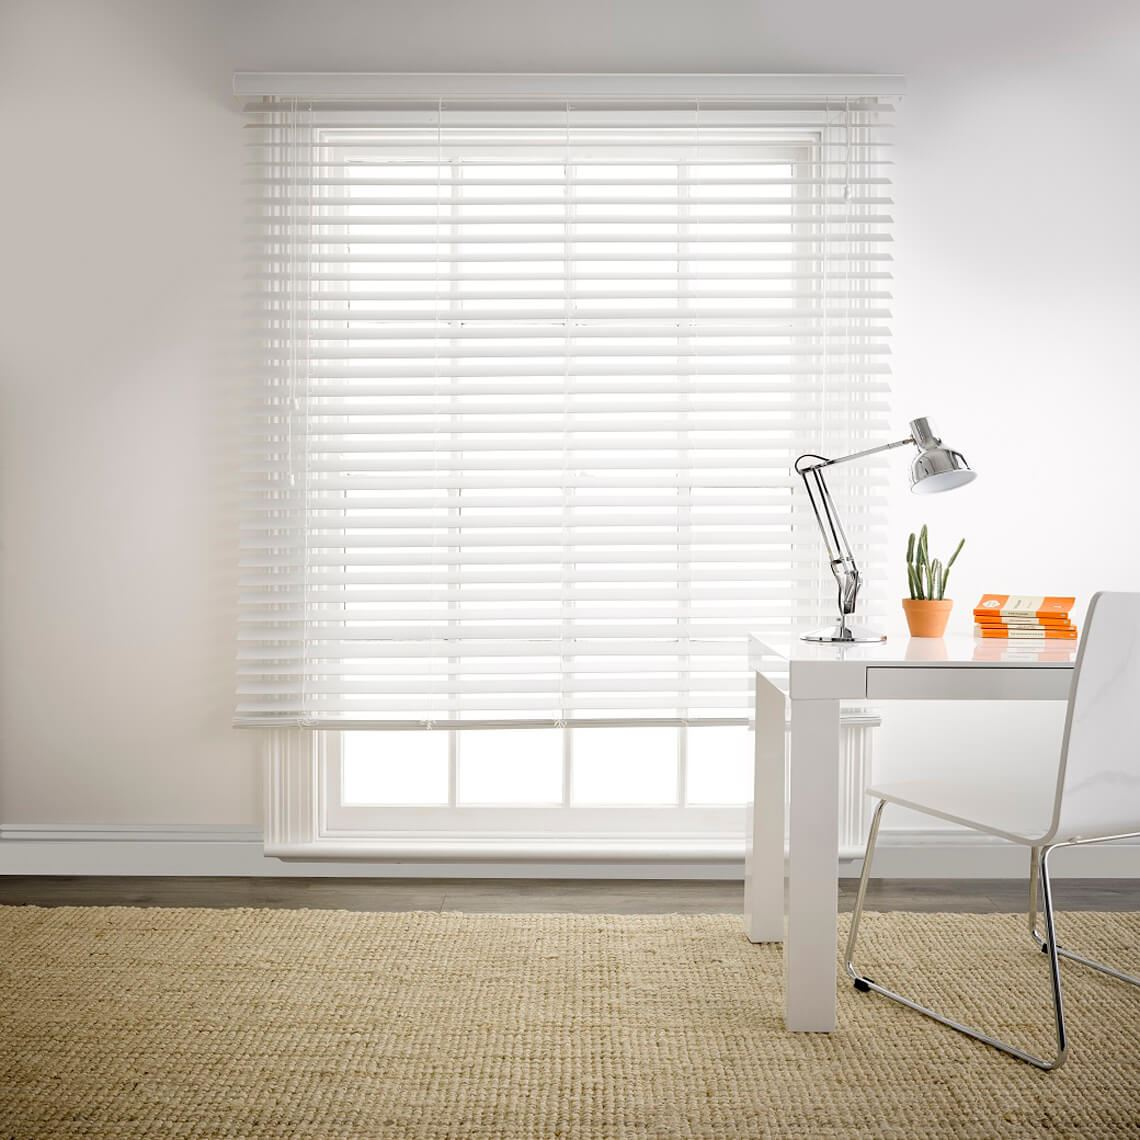 Beaumont Privacy Blind Size W 210cm x D 6cm x H 210cm in White Polyvinyl chloride Freedom by Freedom, a Curtains for sale on Style Sourcebook